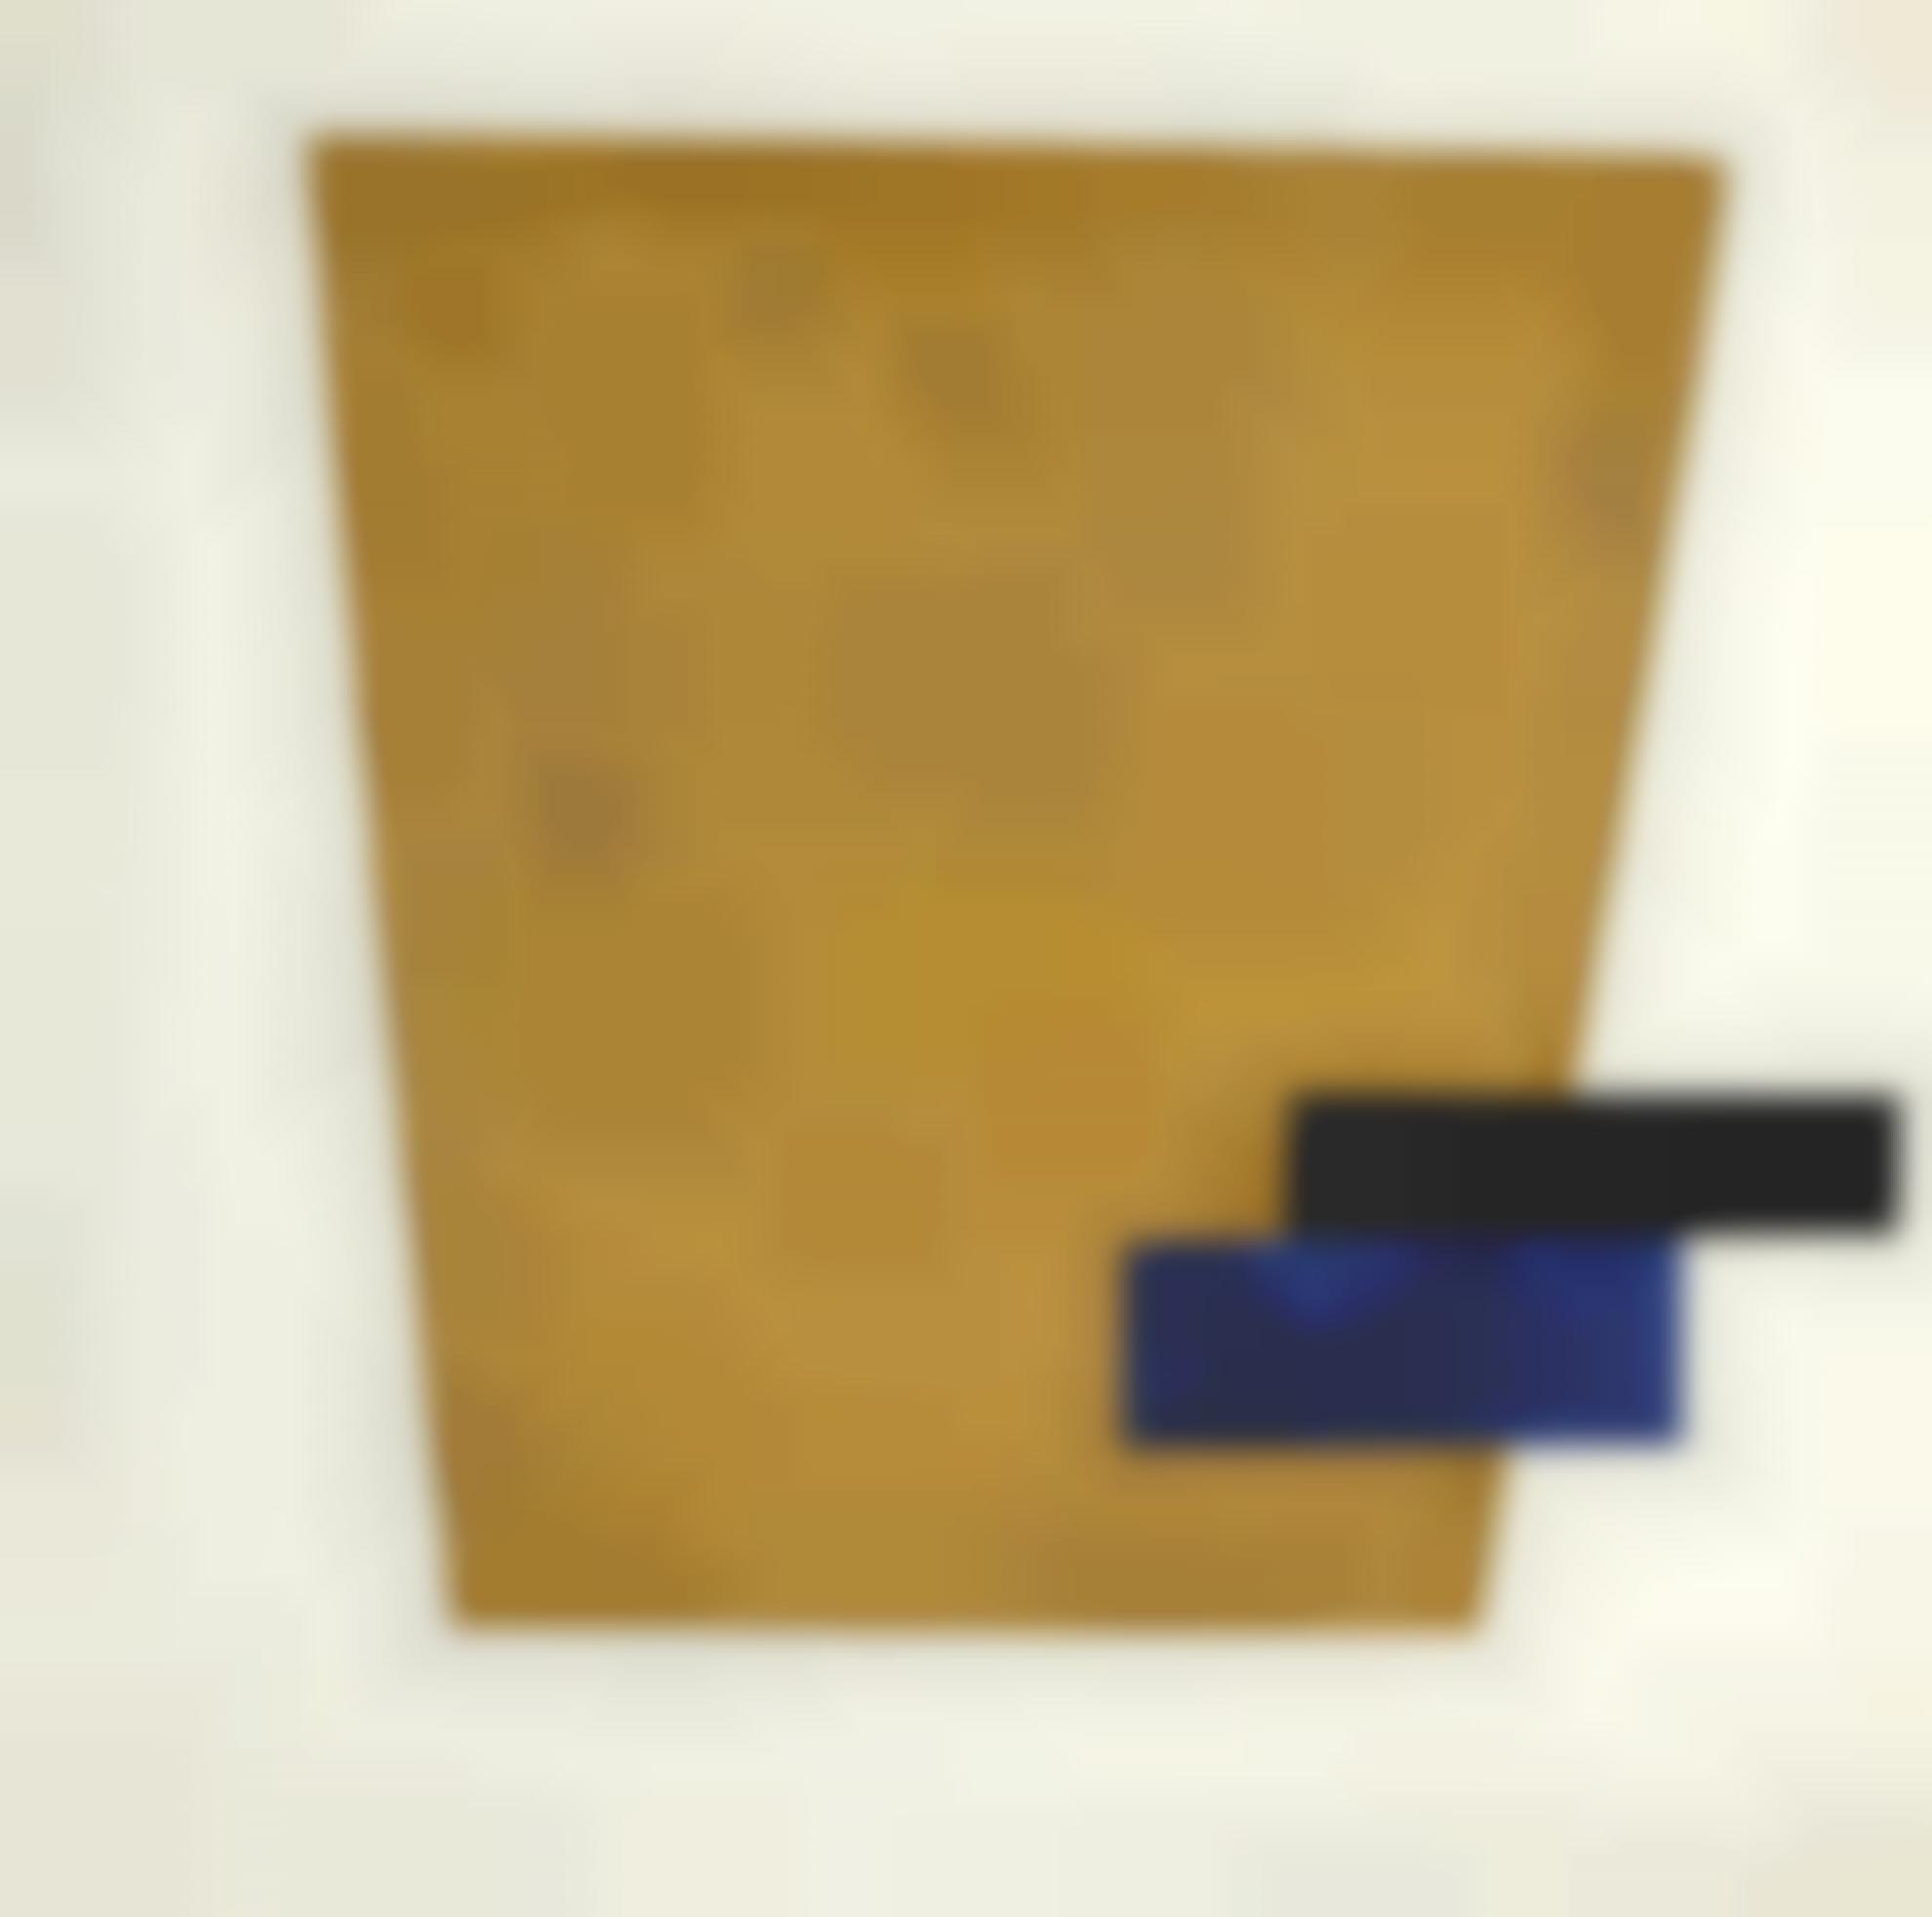 Kazimir Malevich-Suprematist Composition With Plane In Projection-1915